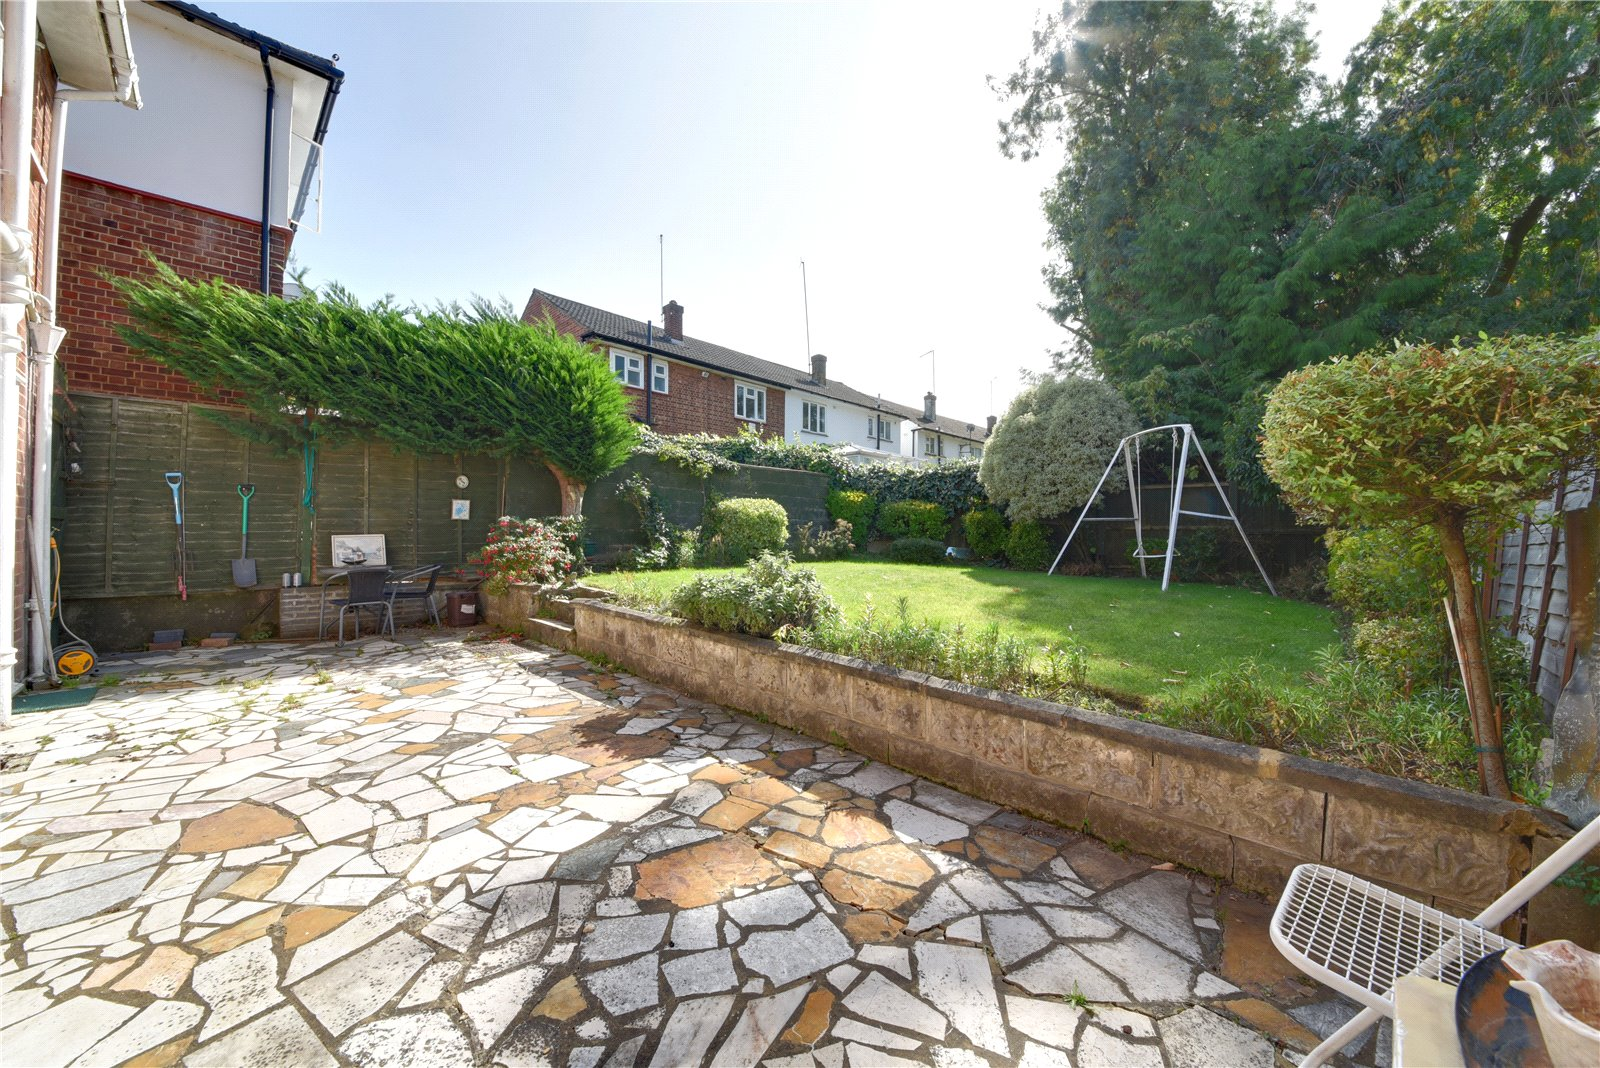 3 bed house for sale in West Finchley, N3 1PB  - Property Image 9